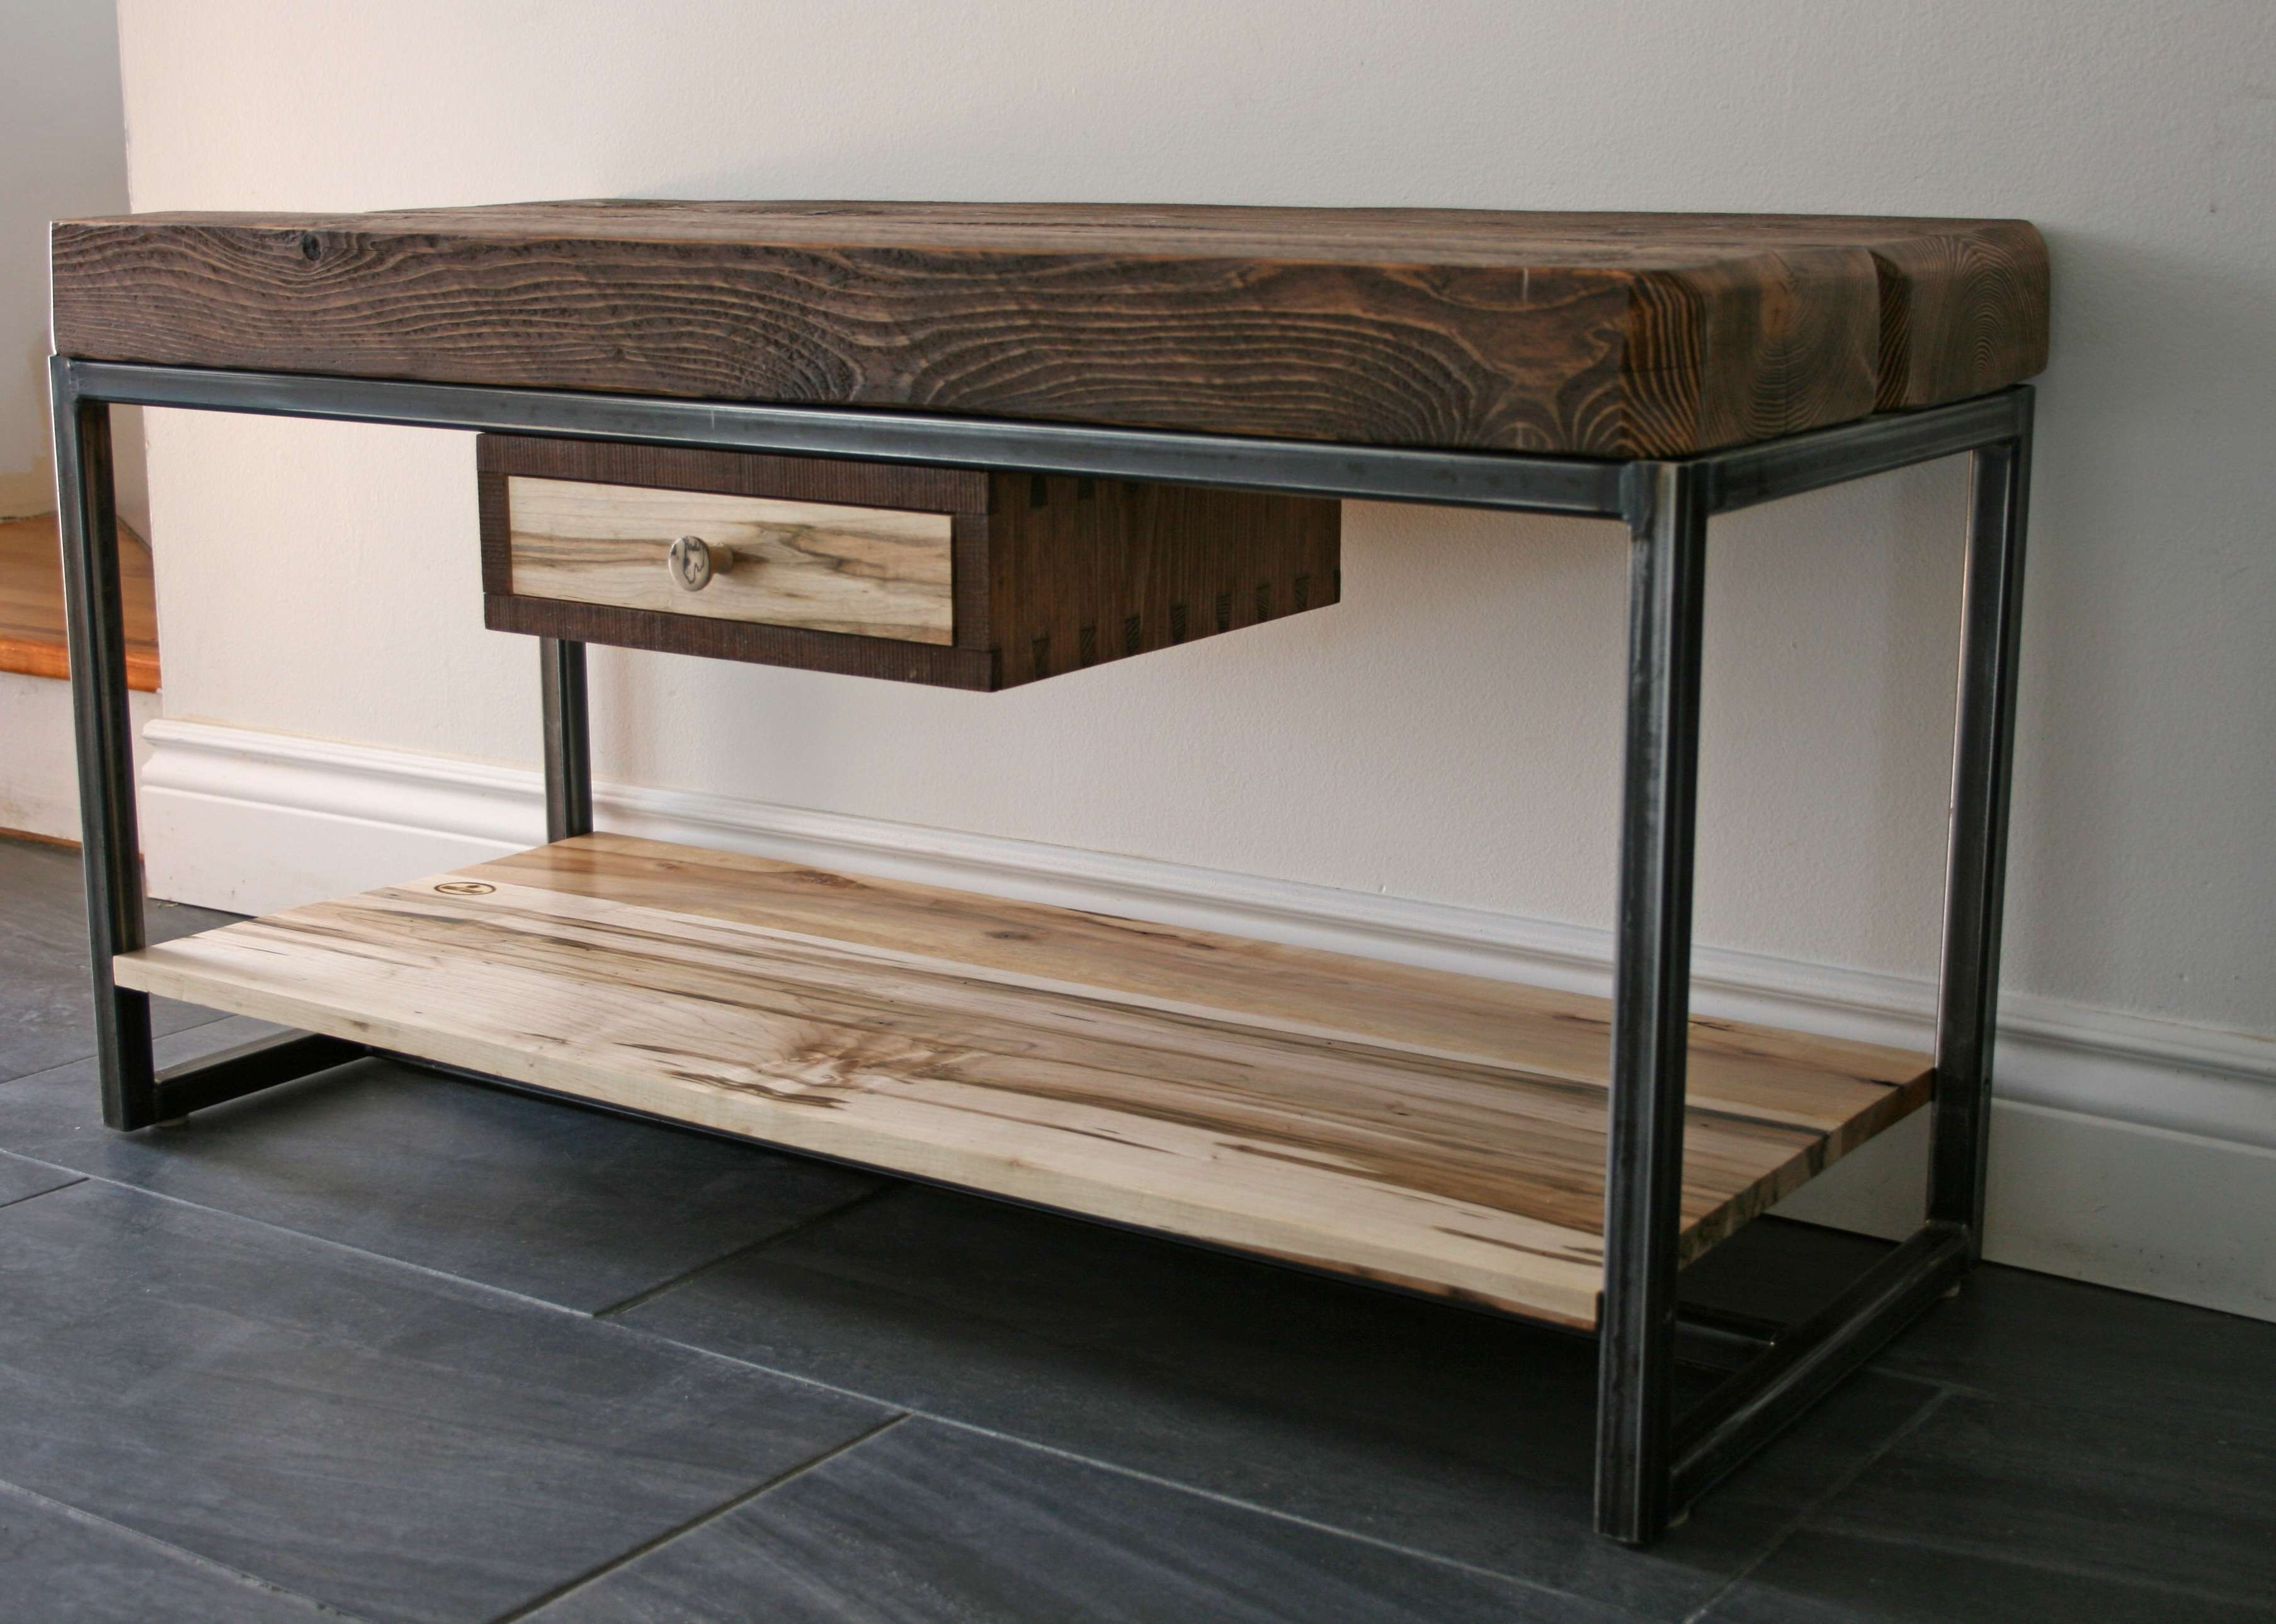 Hemlock And Wormy Maple Tv Stand | Second Nature Wood Design With Regard To Maple Tv Stands (View 13 of 20)